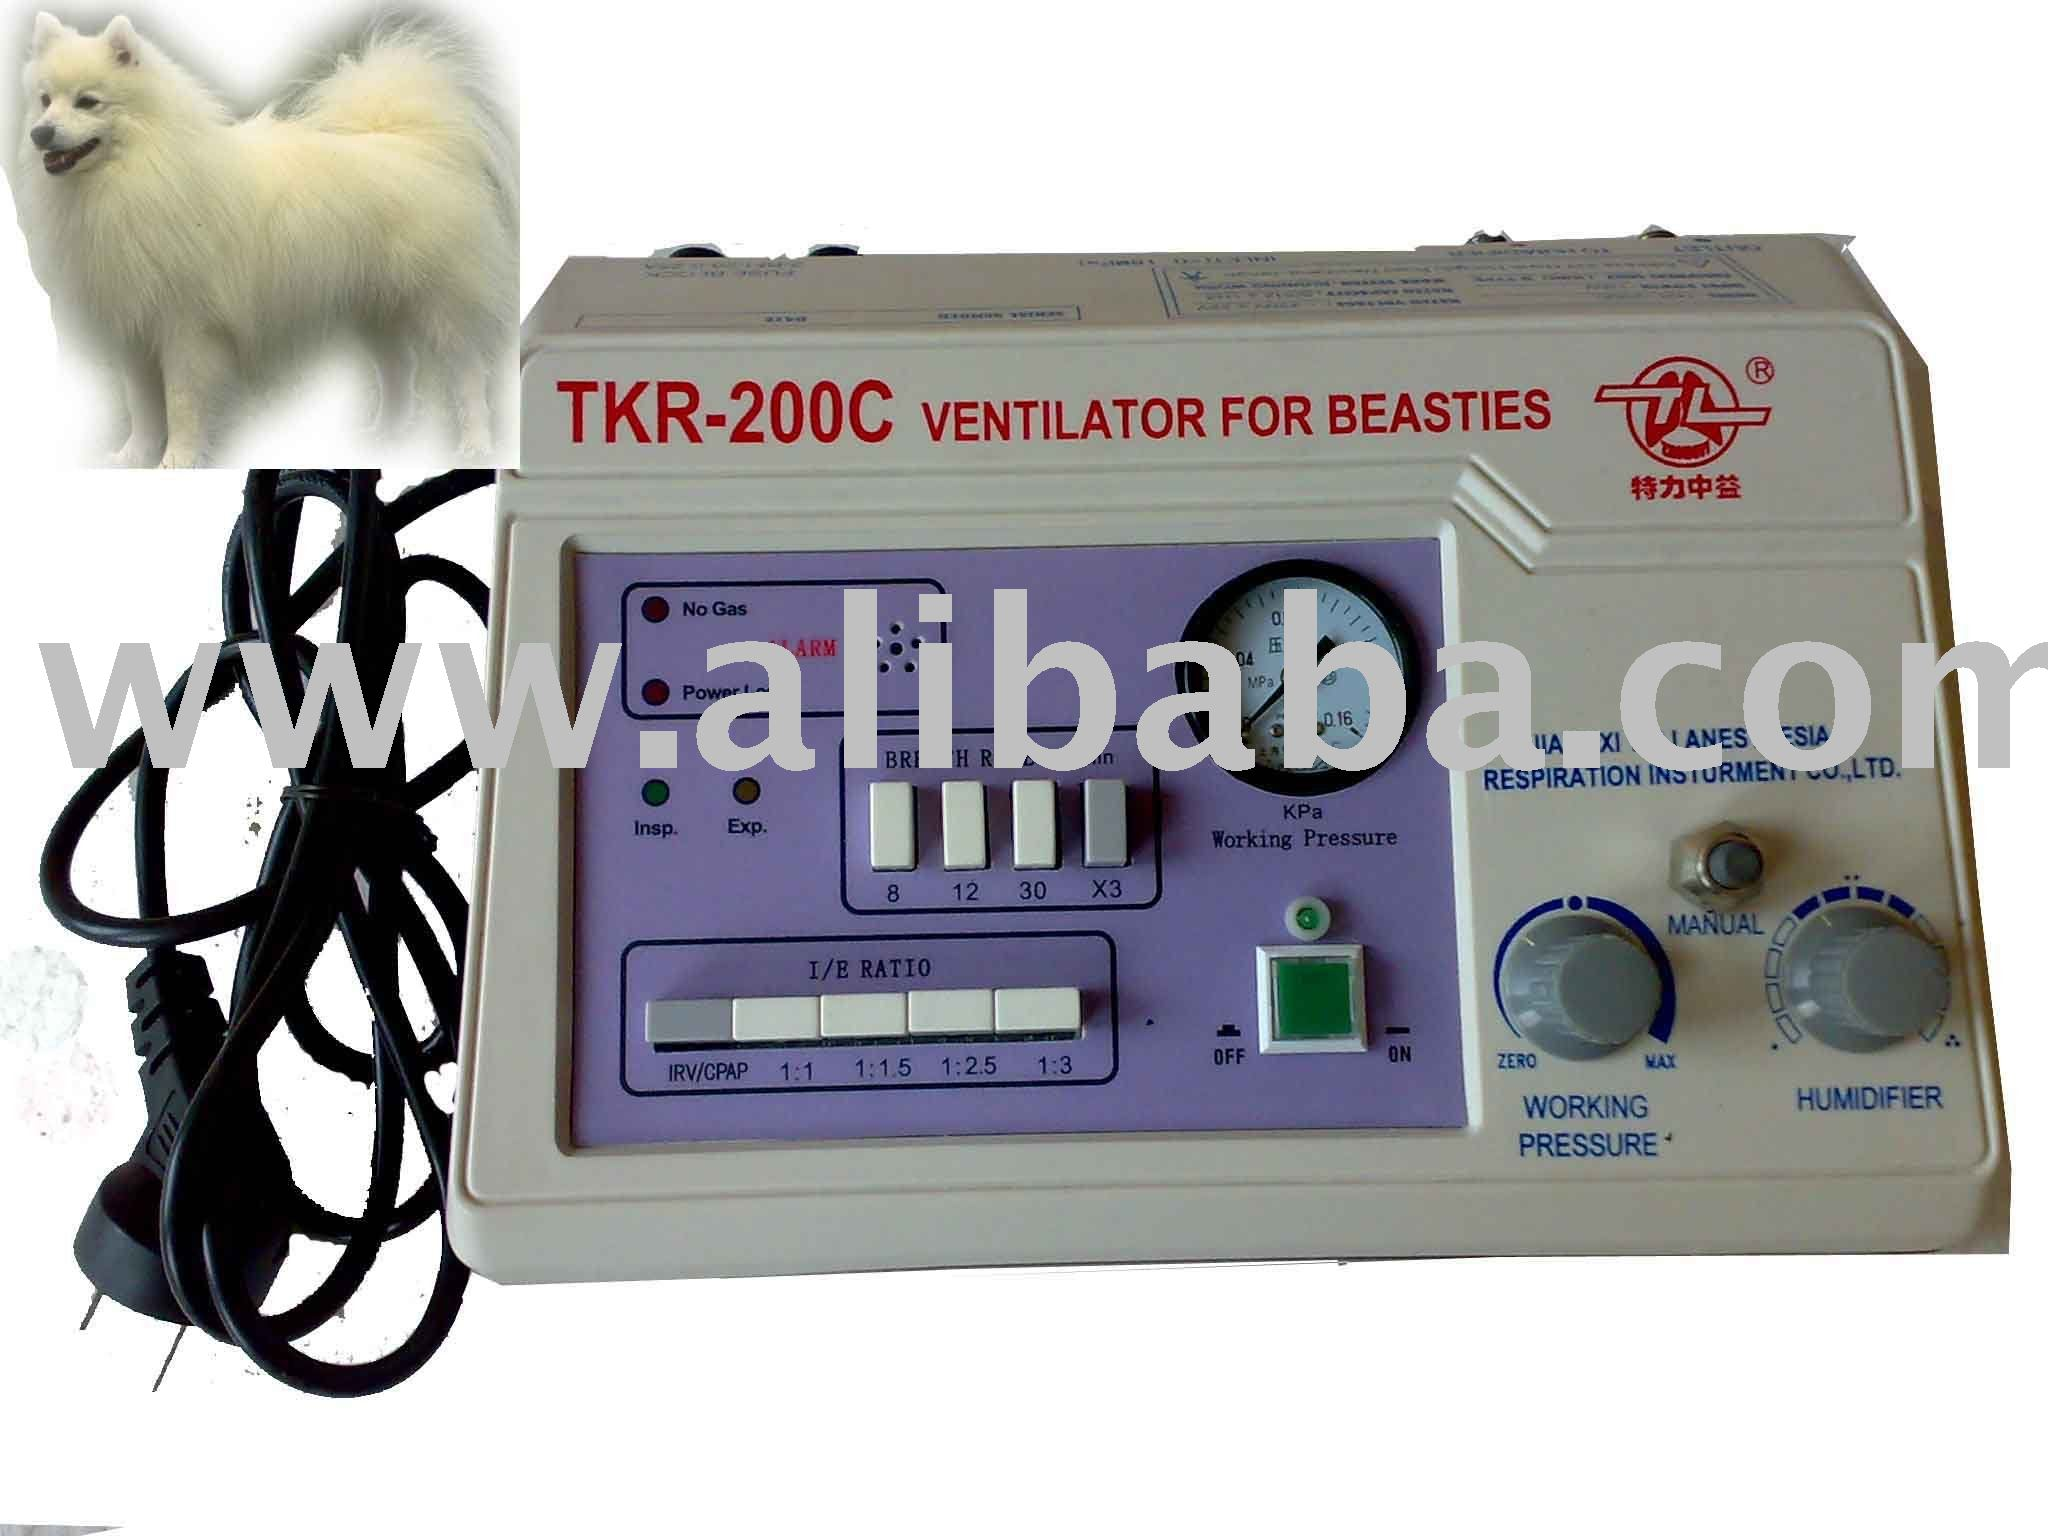 Ventilator for beasties( TKR-200C)